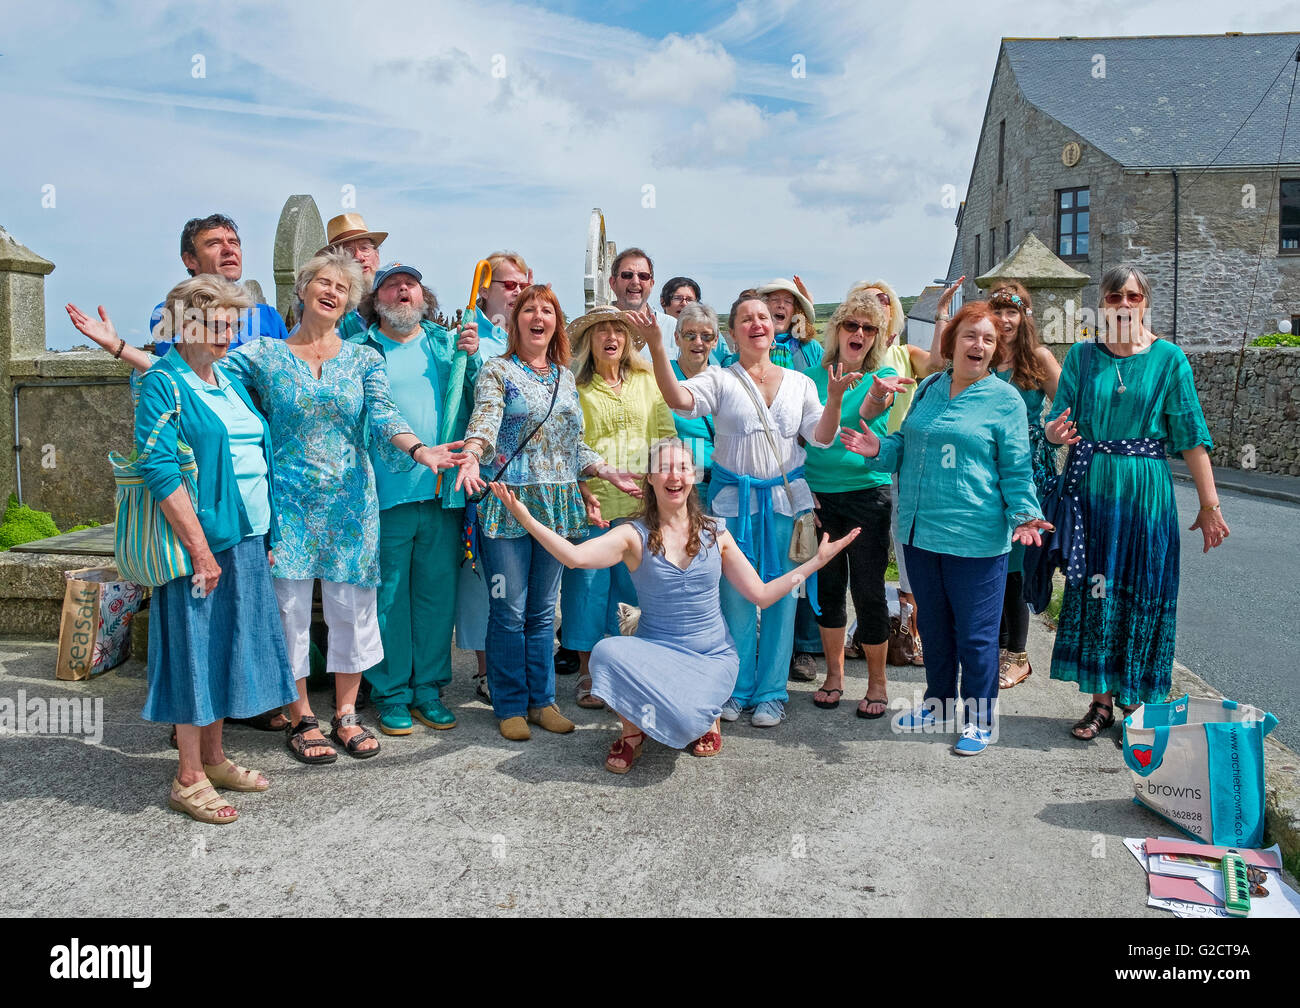 A community drama group singing in the street at St.Just in Cornwall, England, UK - Stock Image